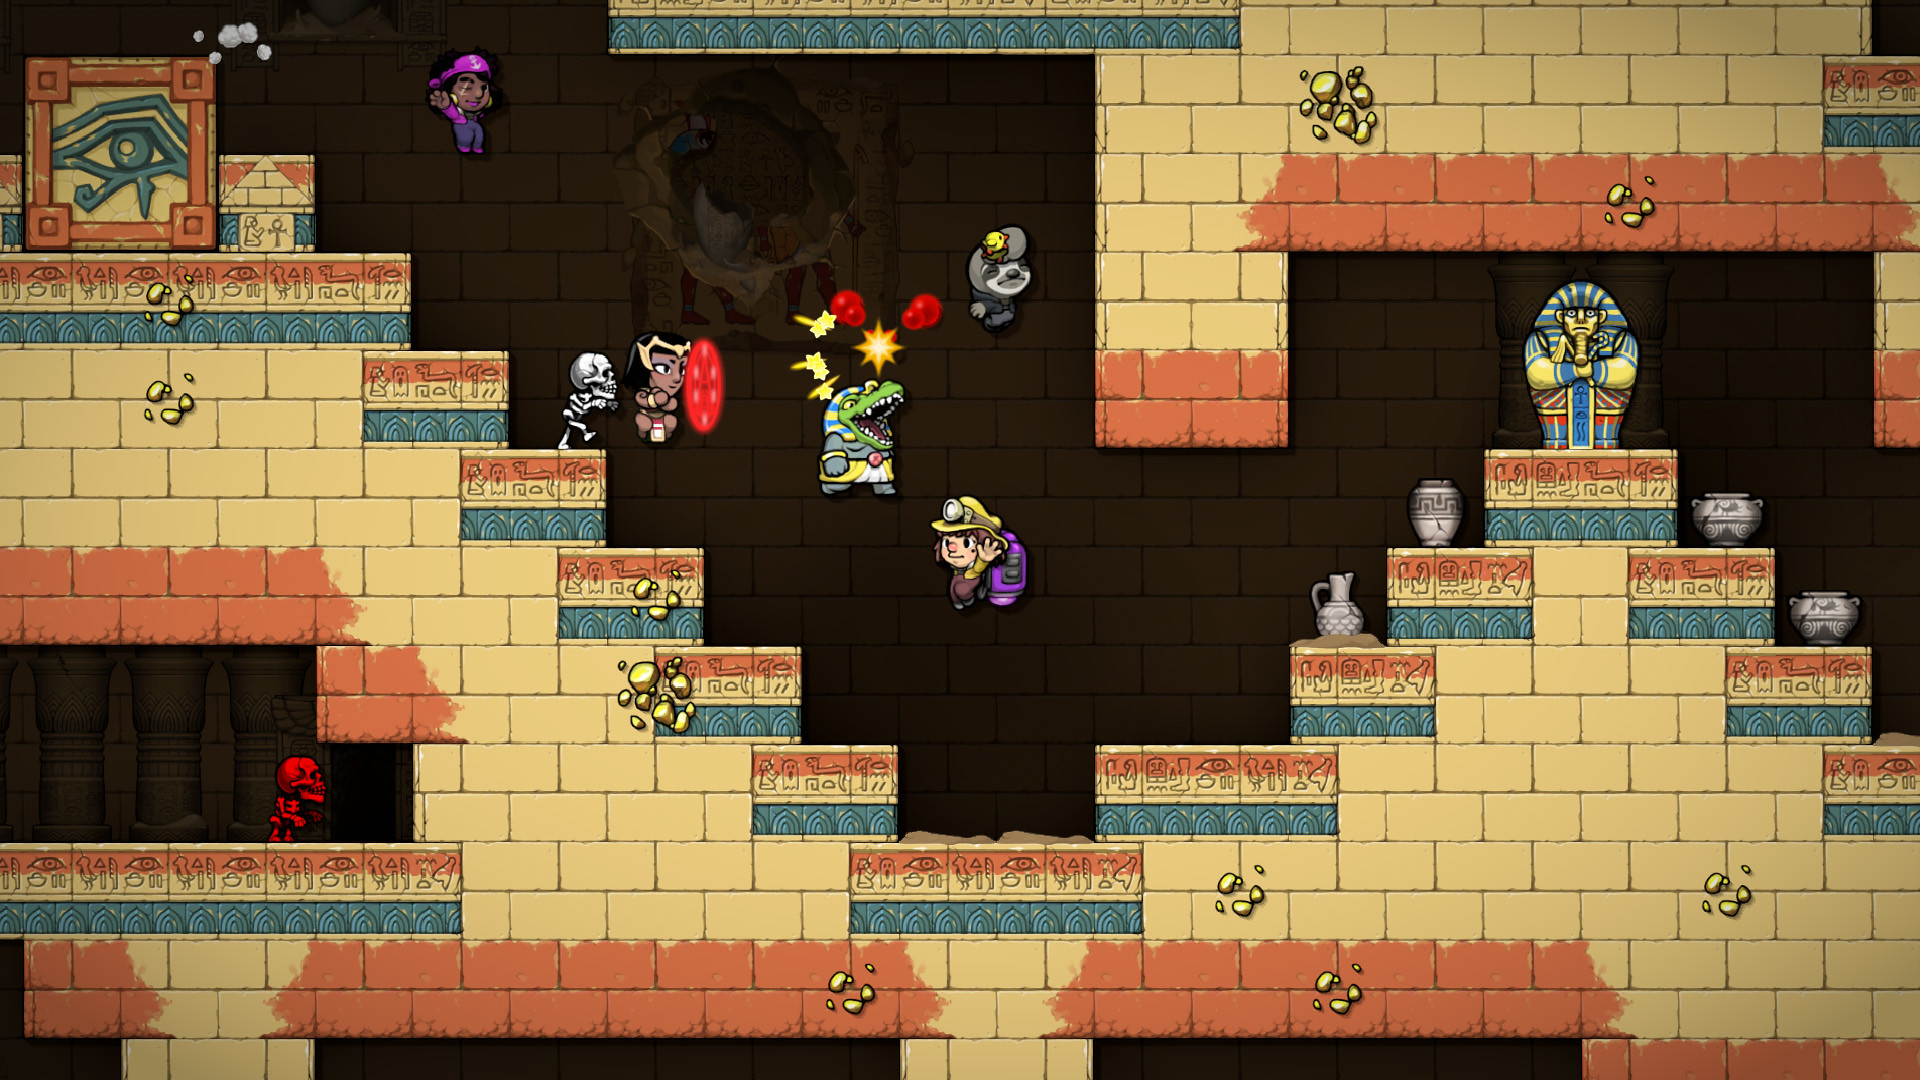 Delayed Roguelike Spelunky 2 Comes To Ps4 On September 15th Engadget